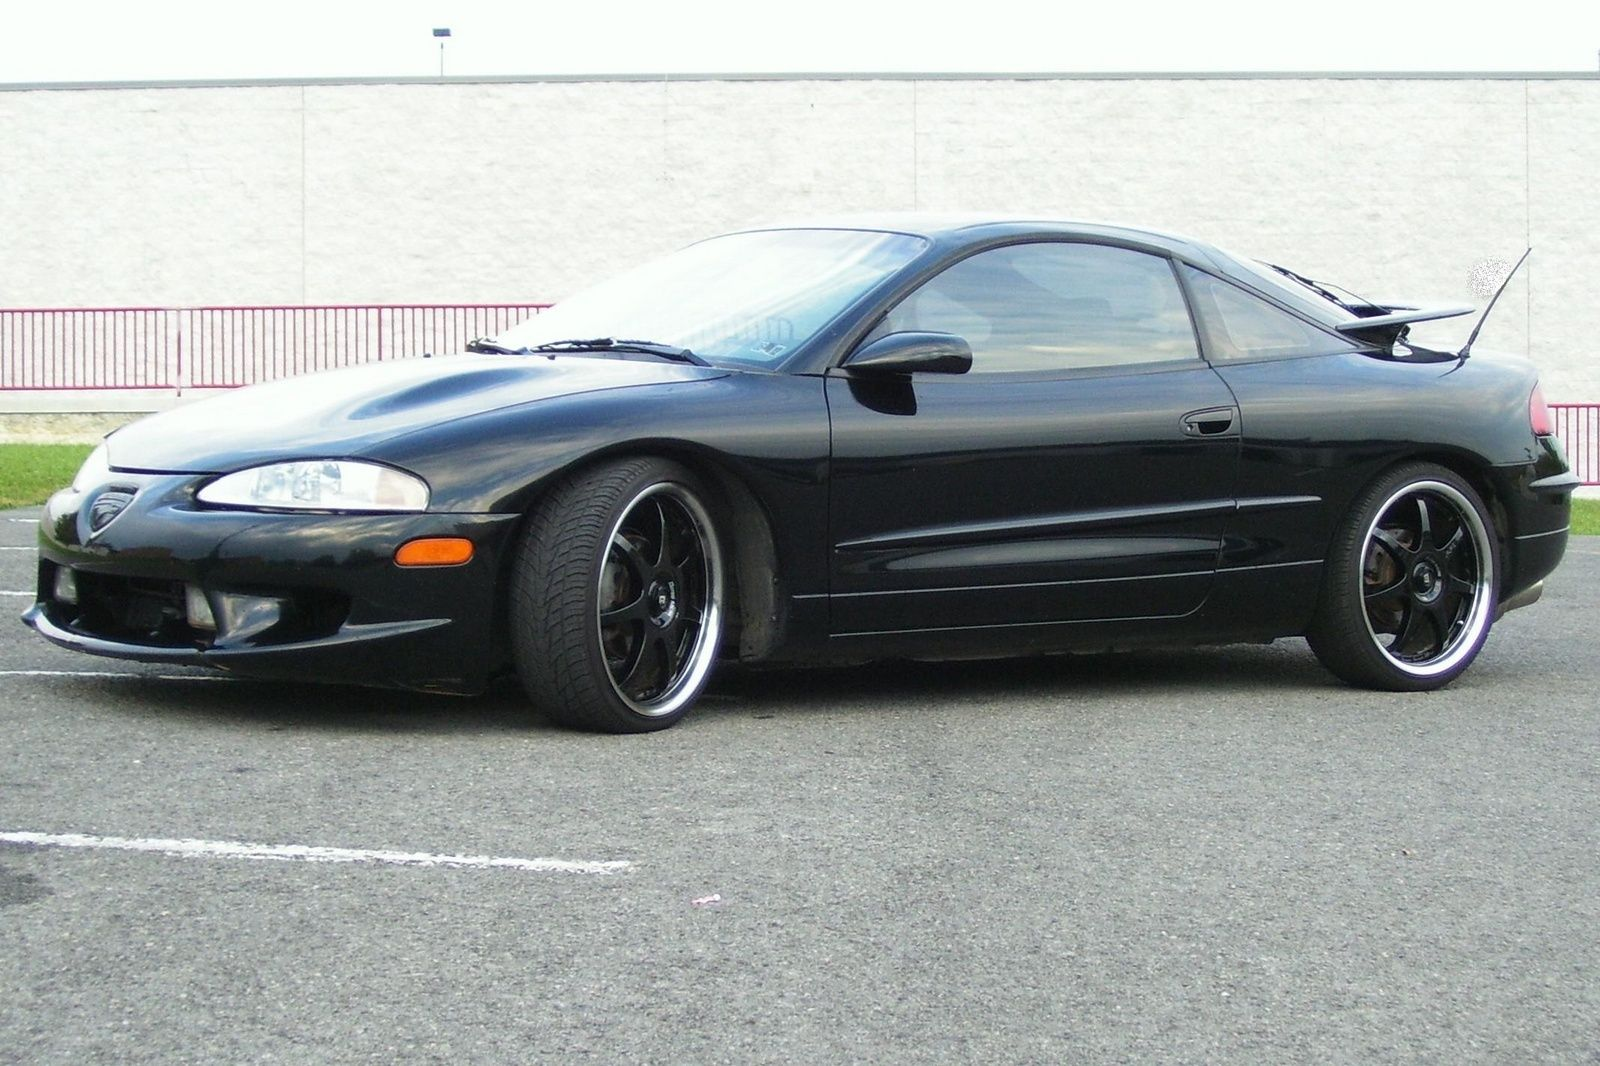 My Old 1997 Eagle Talon Tsi Awd Funny To Find Pics Of My Old Car In